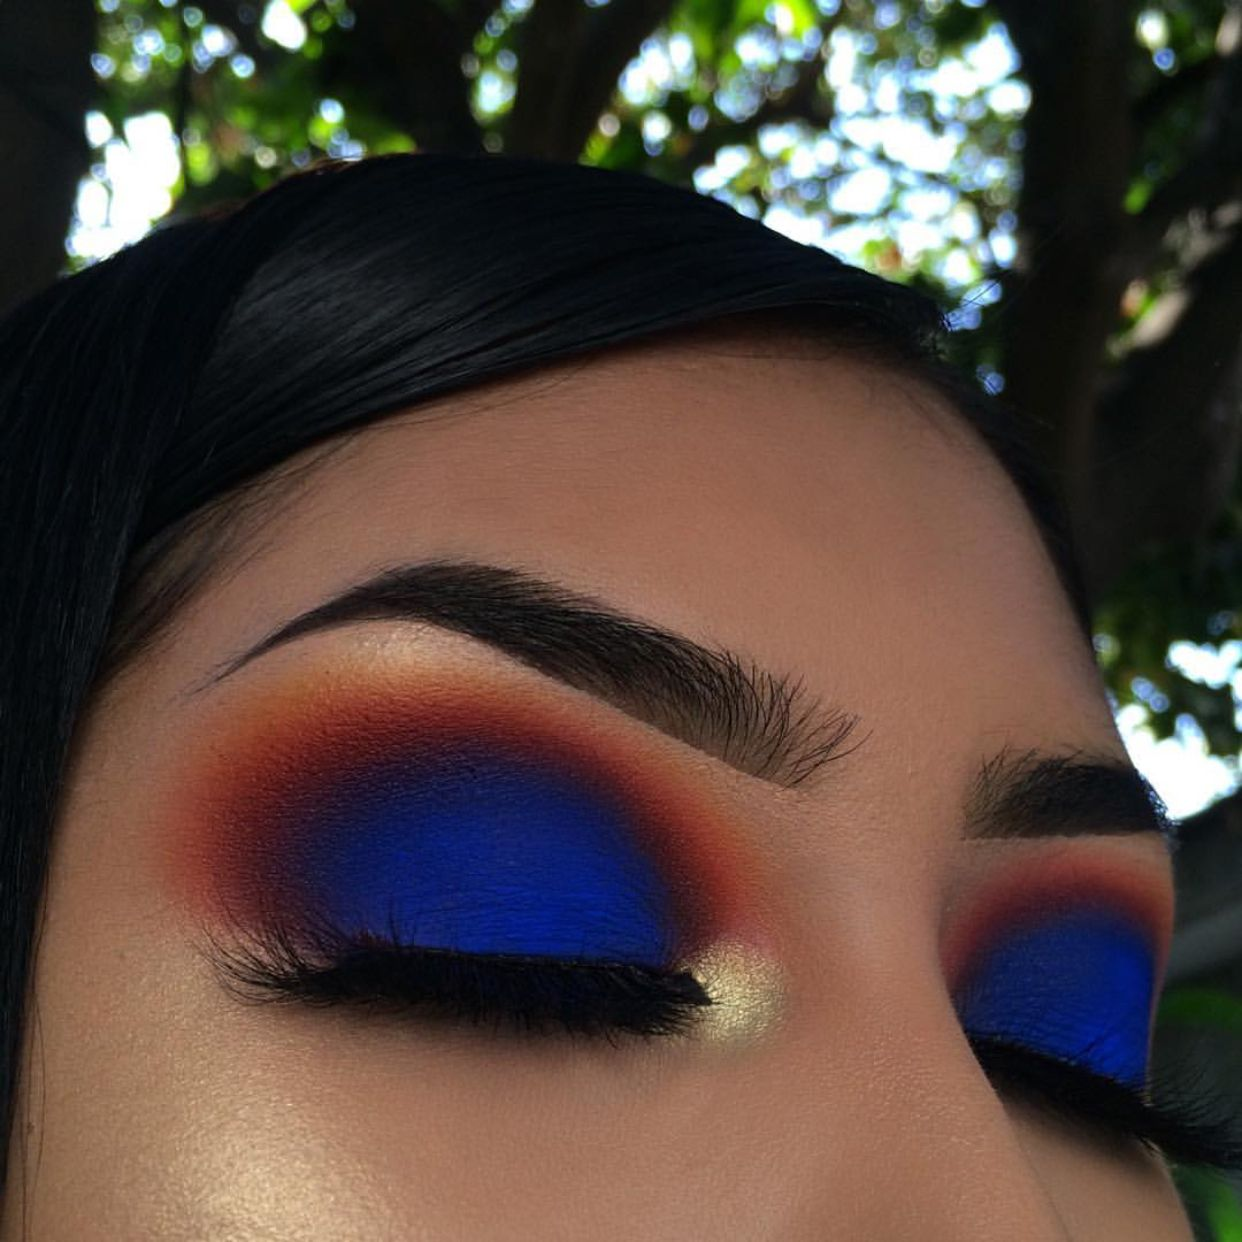 Pin by 🤠🇲🇽 on Makeup Makeup pictures, Eyeshadow makeup